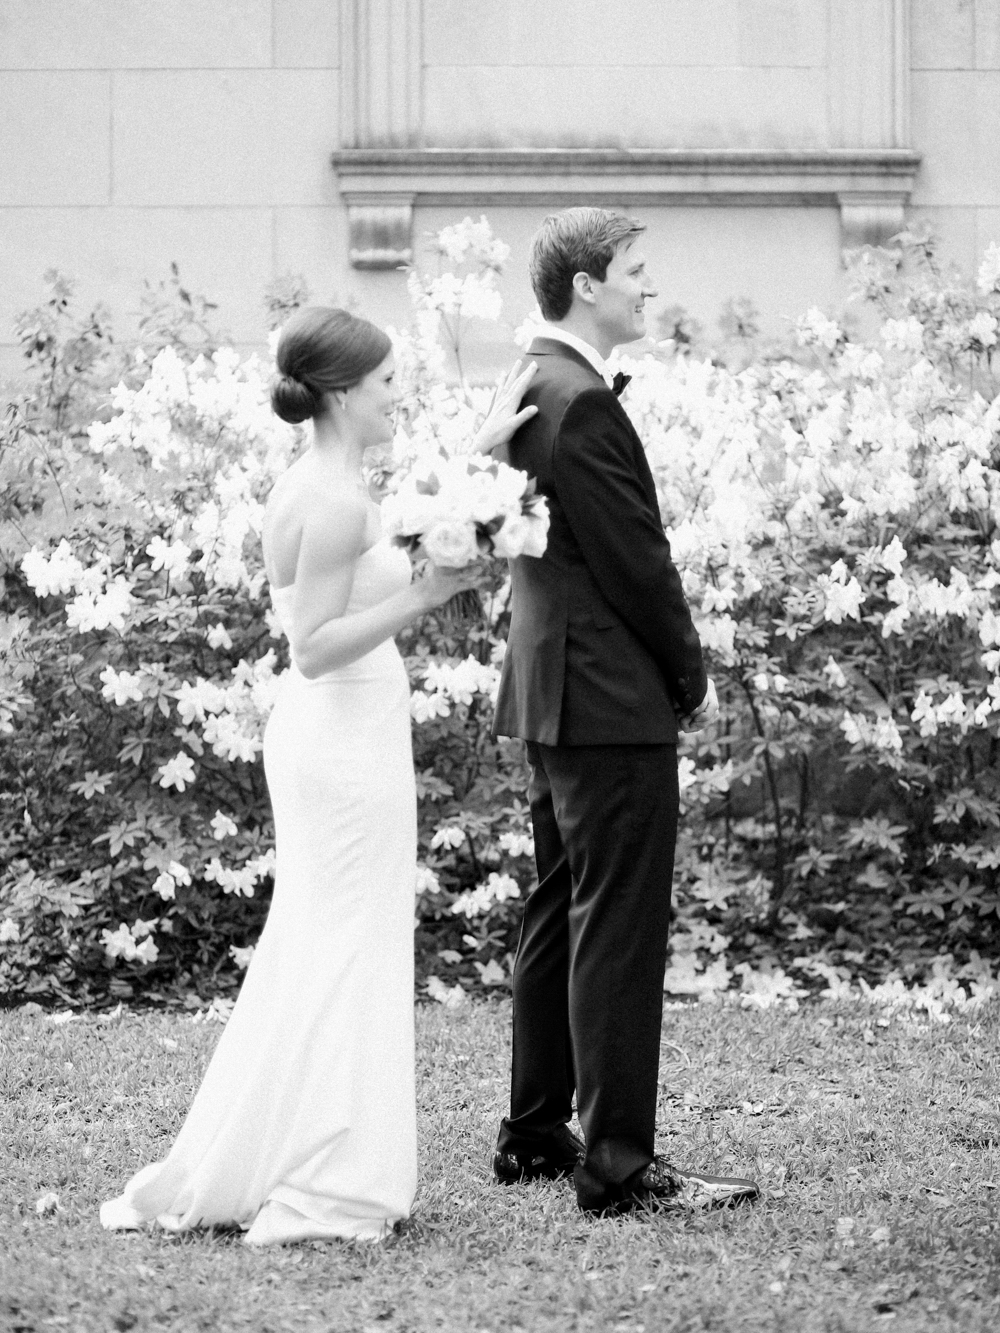 benefits of a first look_wedding photography_wedding photographer_film wedding photographer_Christine Gosch_www.christinegosch.com_Houston, Texas wedding photographer_ Houston, Texas-3.jpg